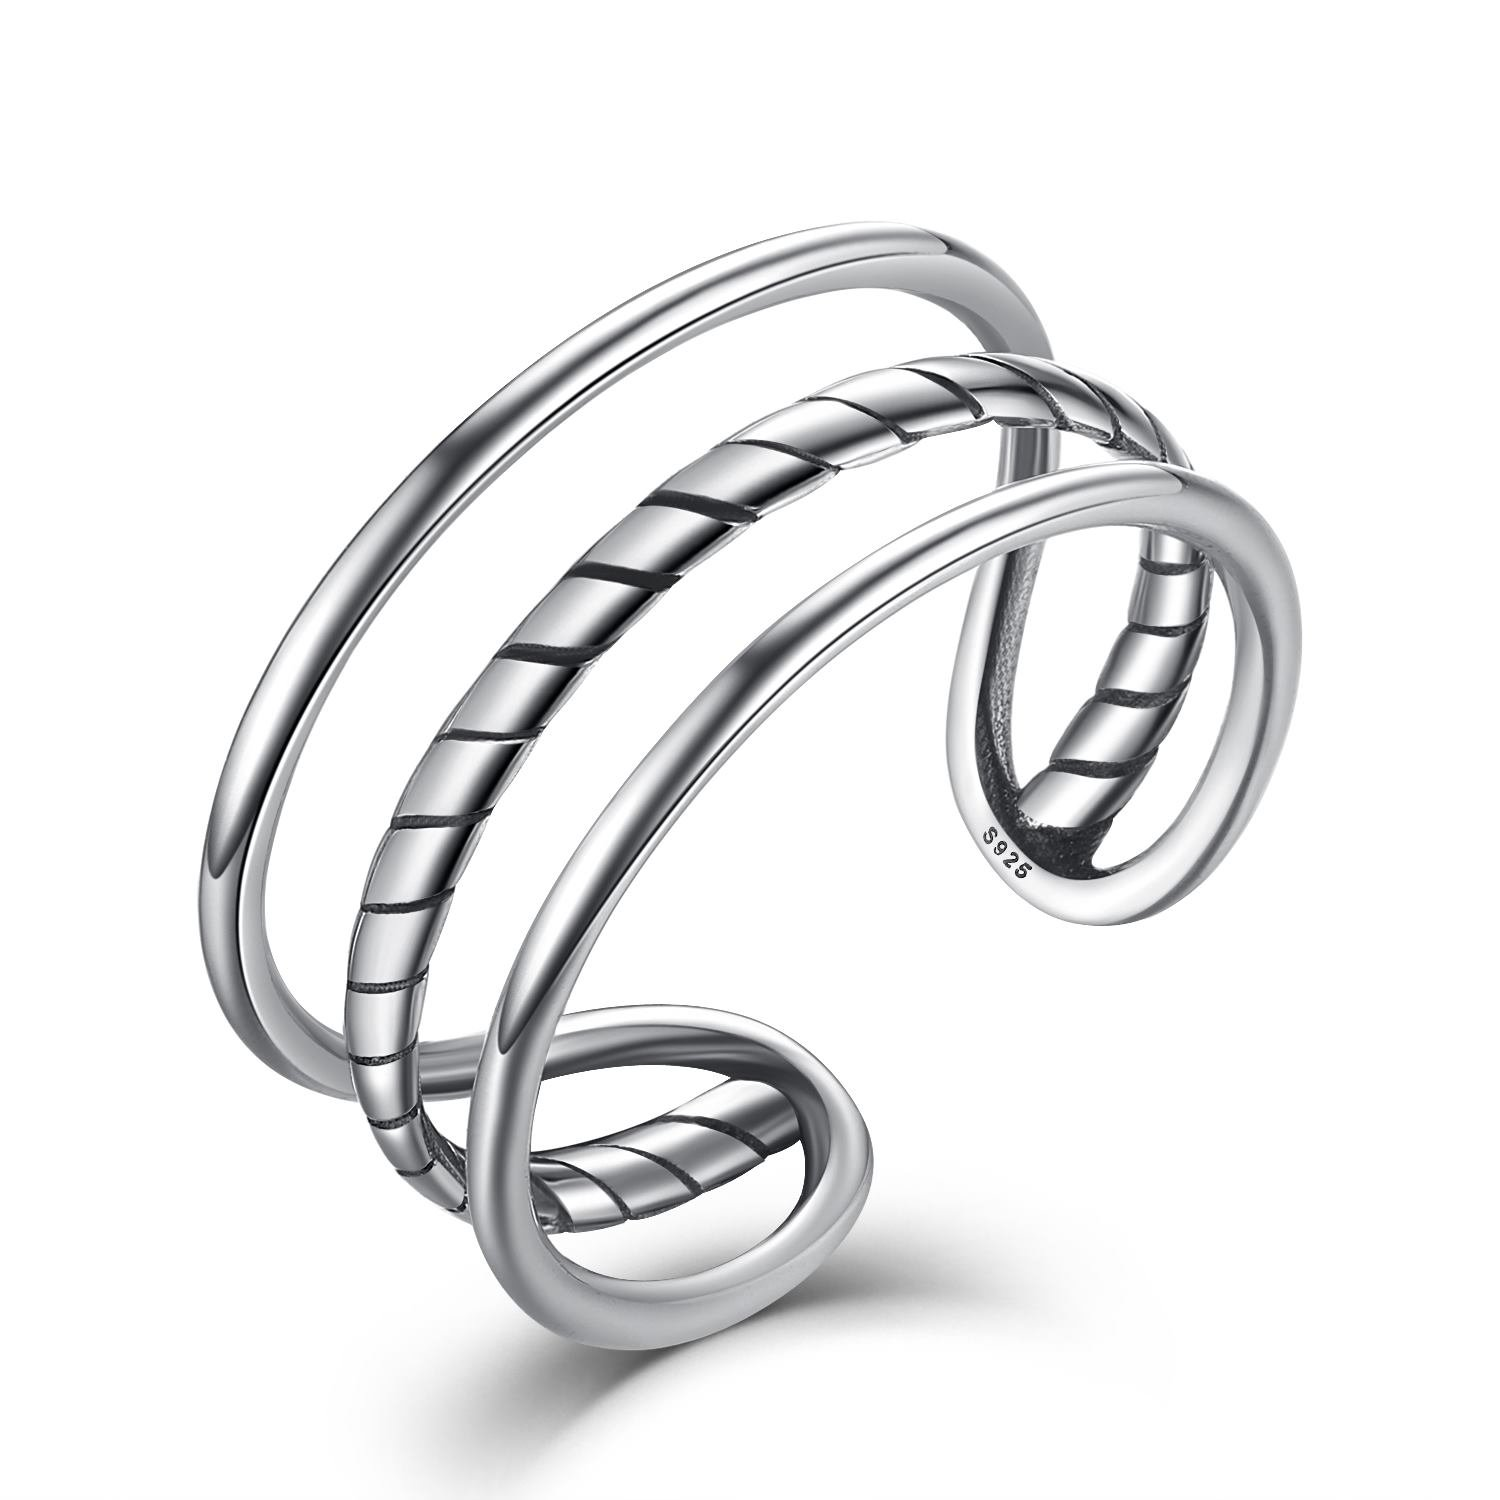 Mothers Day Gift, Fashion jewelry Simple Triple Cuff Band, Women Men Sterling Silver Open Adjustable Ring JOEMOD LO01